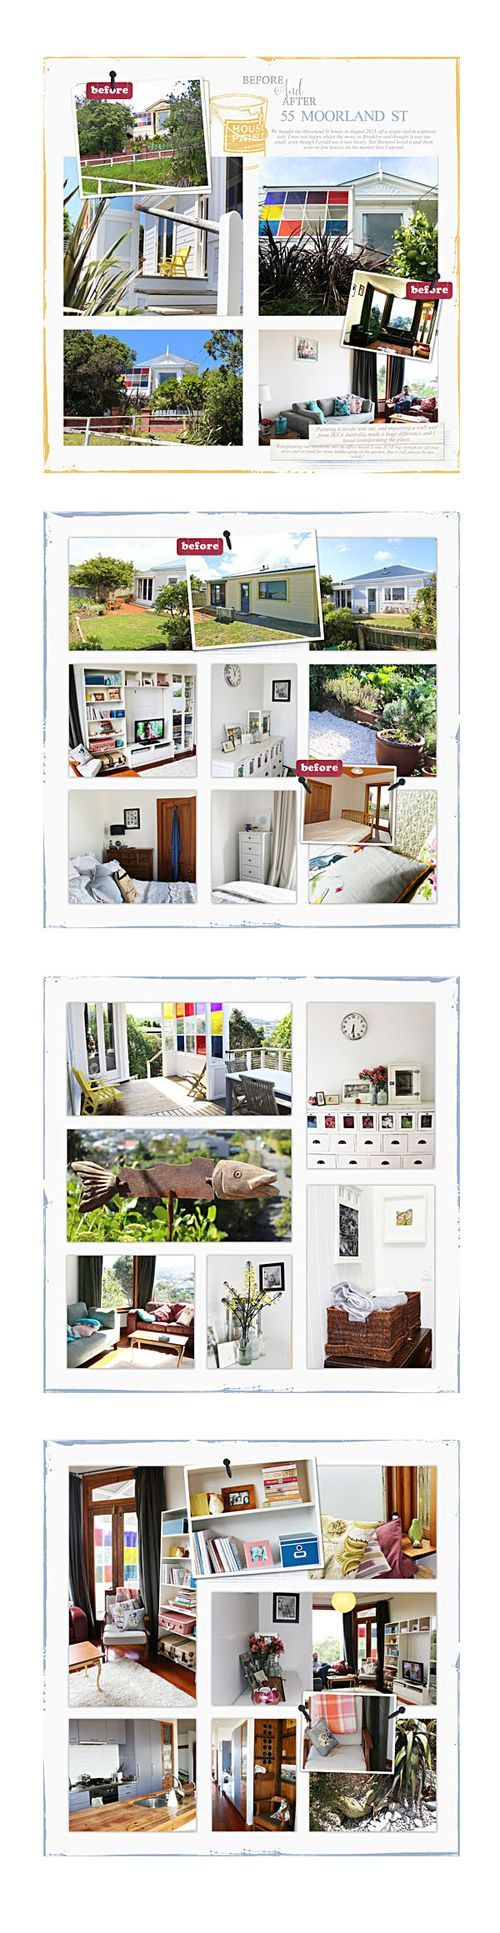 Scrap express 170 template before and after pages of home remodeling project, Lynn Grieveson, Designer Digitals   #digital #scrapbooking #photobook #templates